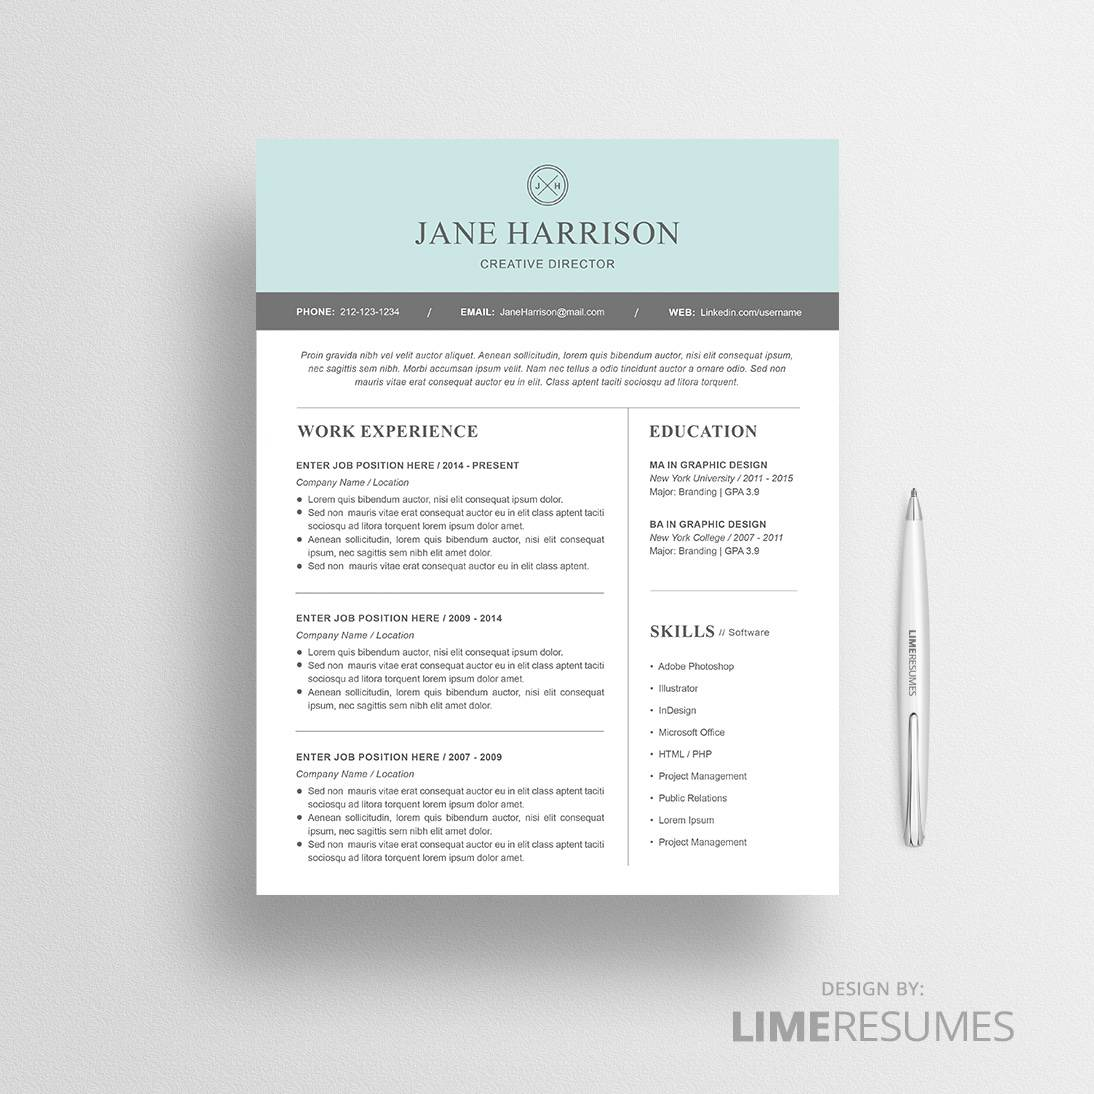 reseume templates - modern resume template for microsoft word limeresumes